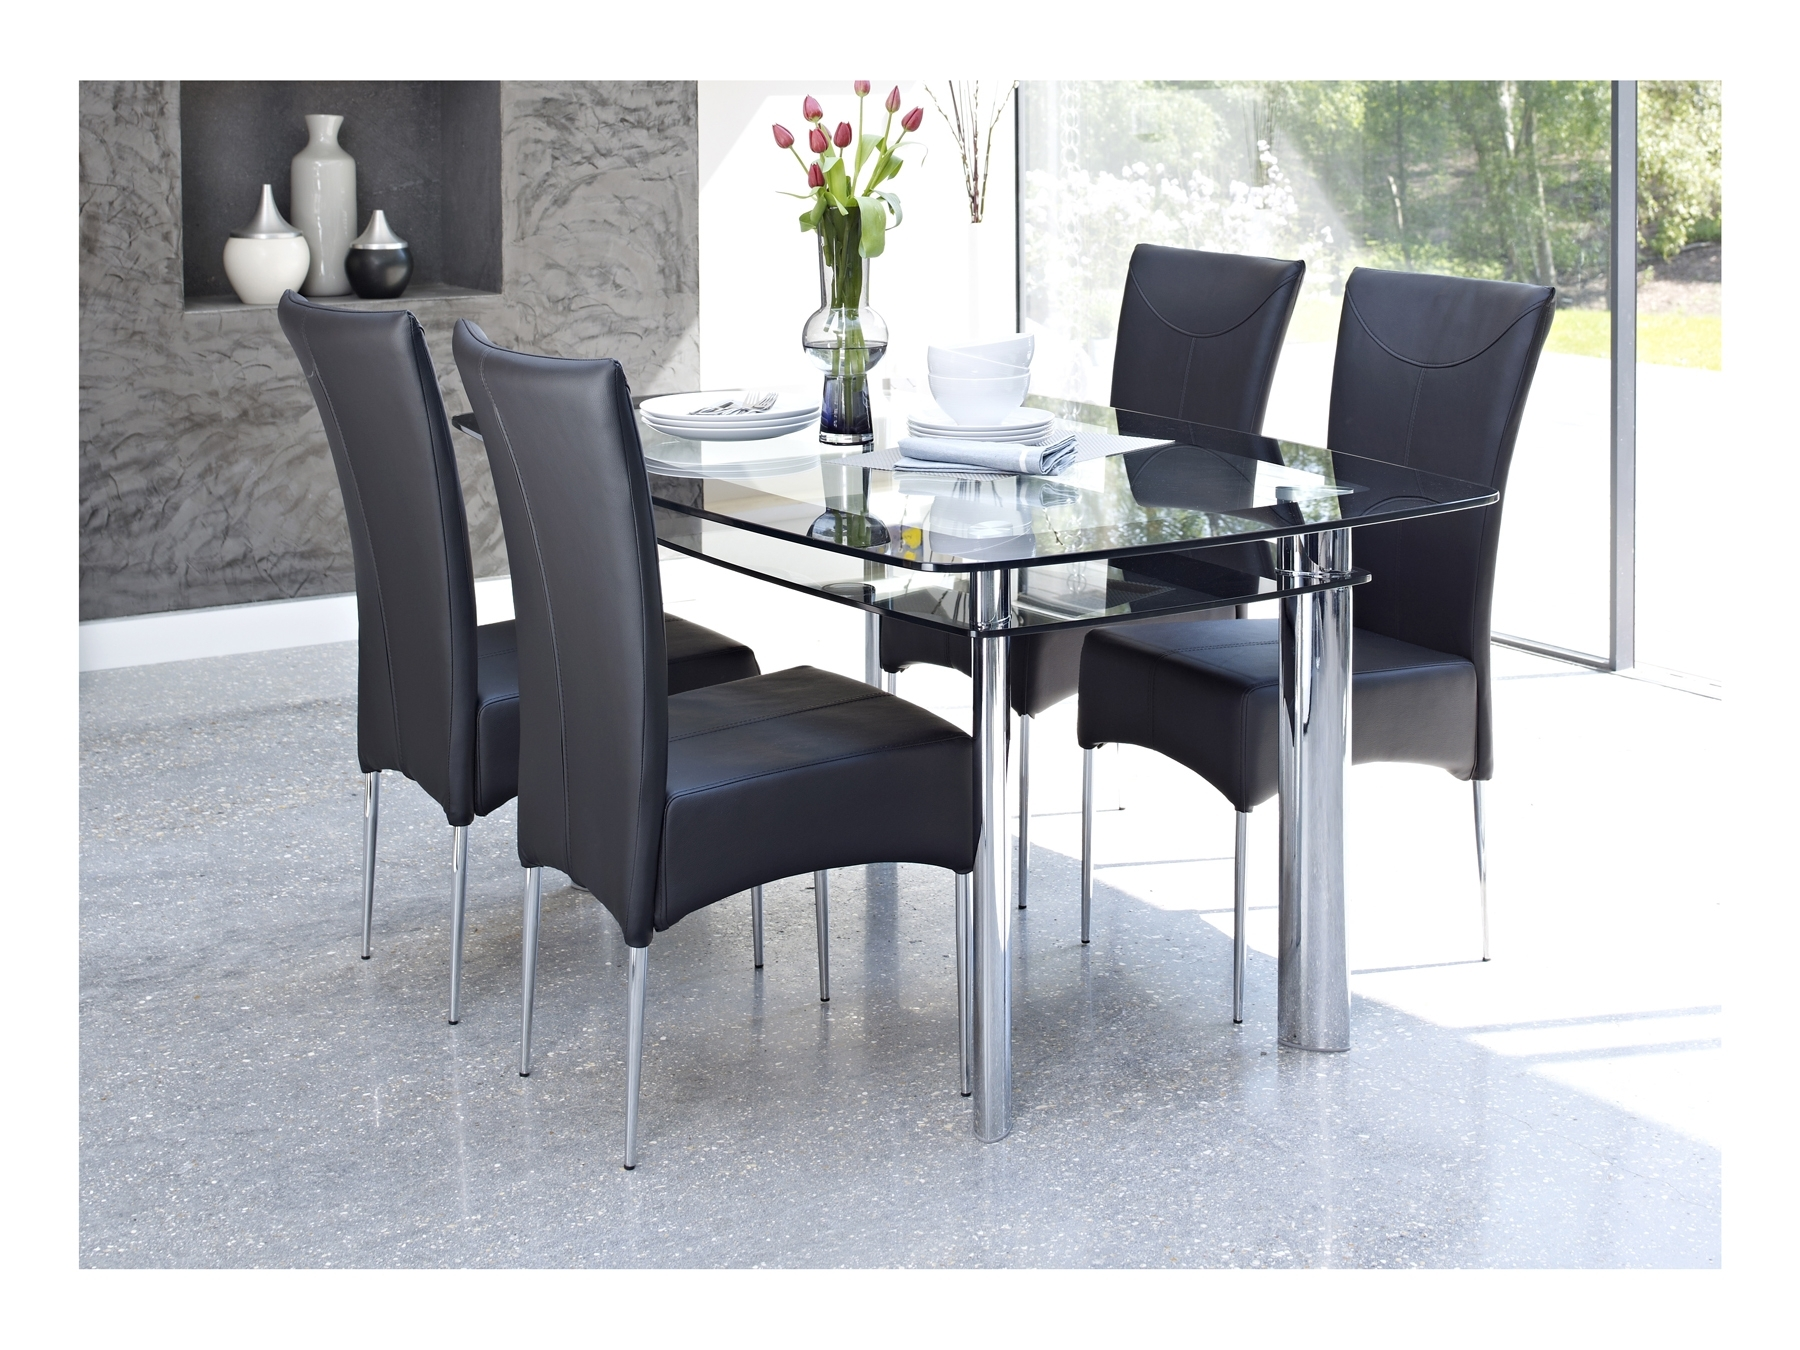 Most Current Mother Ideas: Bradford Dining Room Furniture Collection, Dining Room With Regard To Bradford Dining Tables (View 12 of 25)